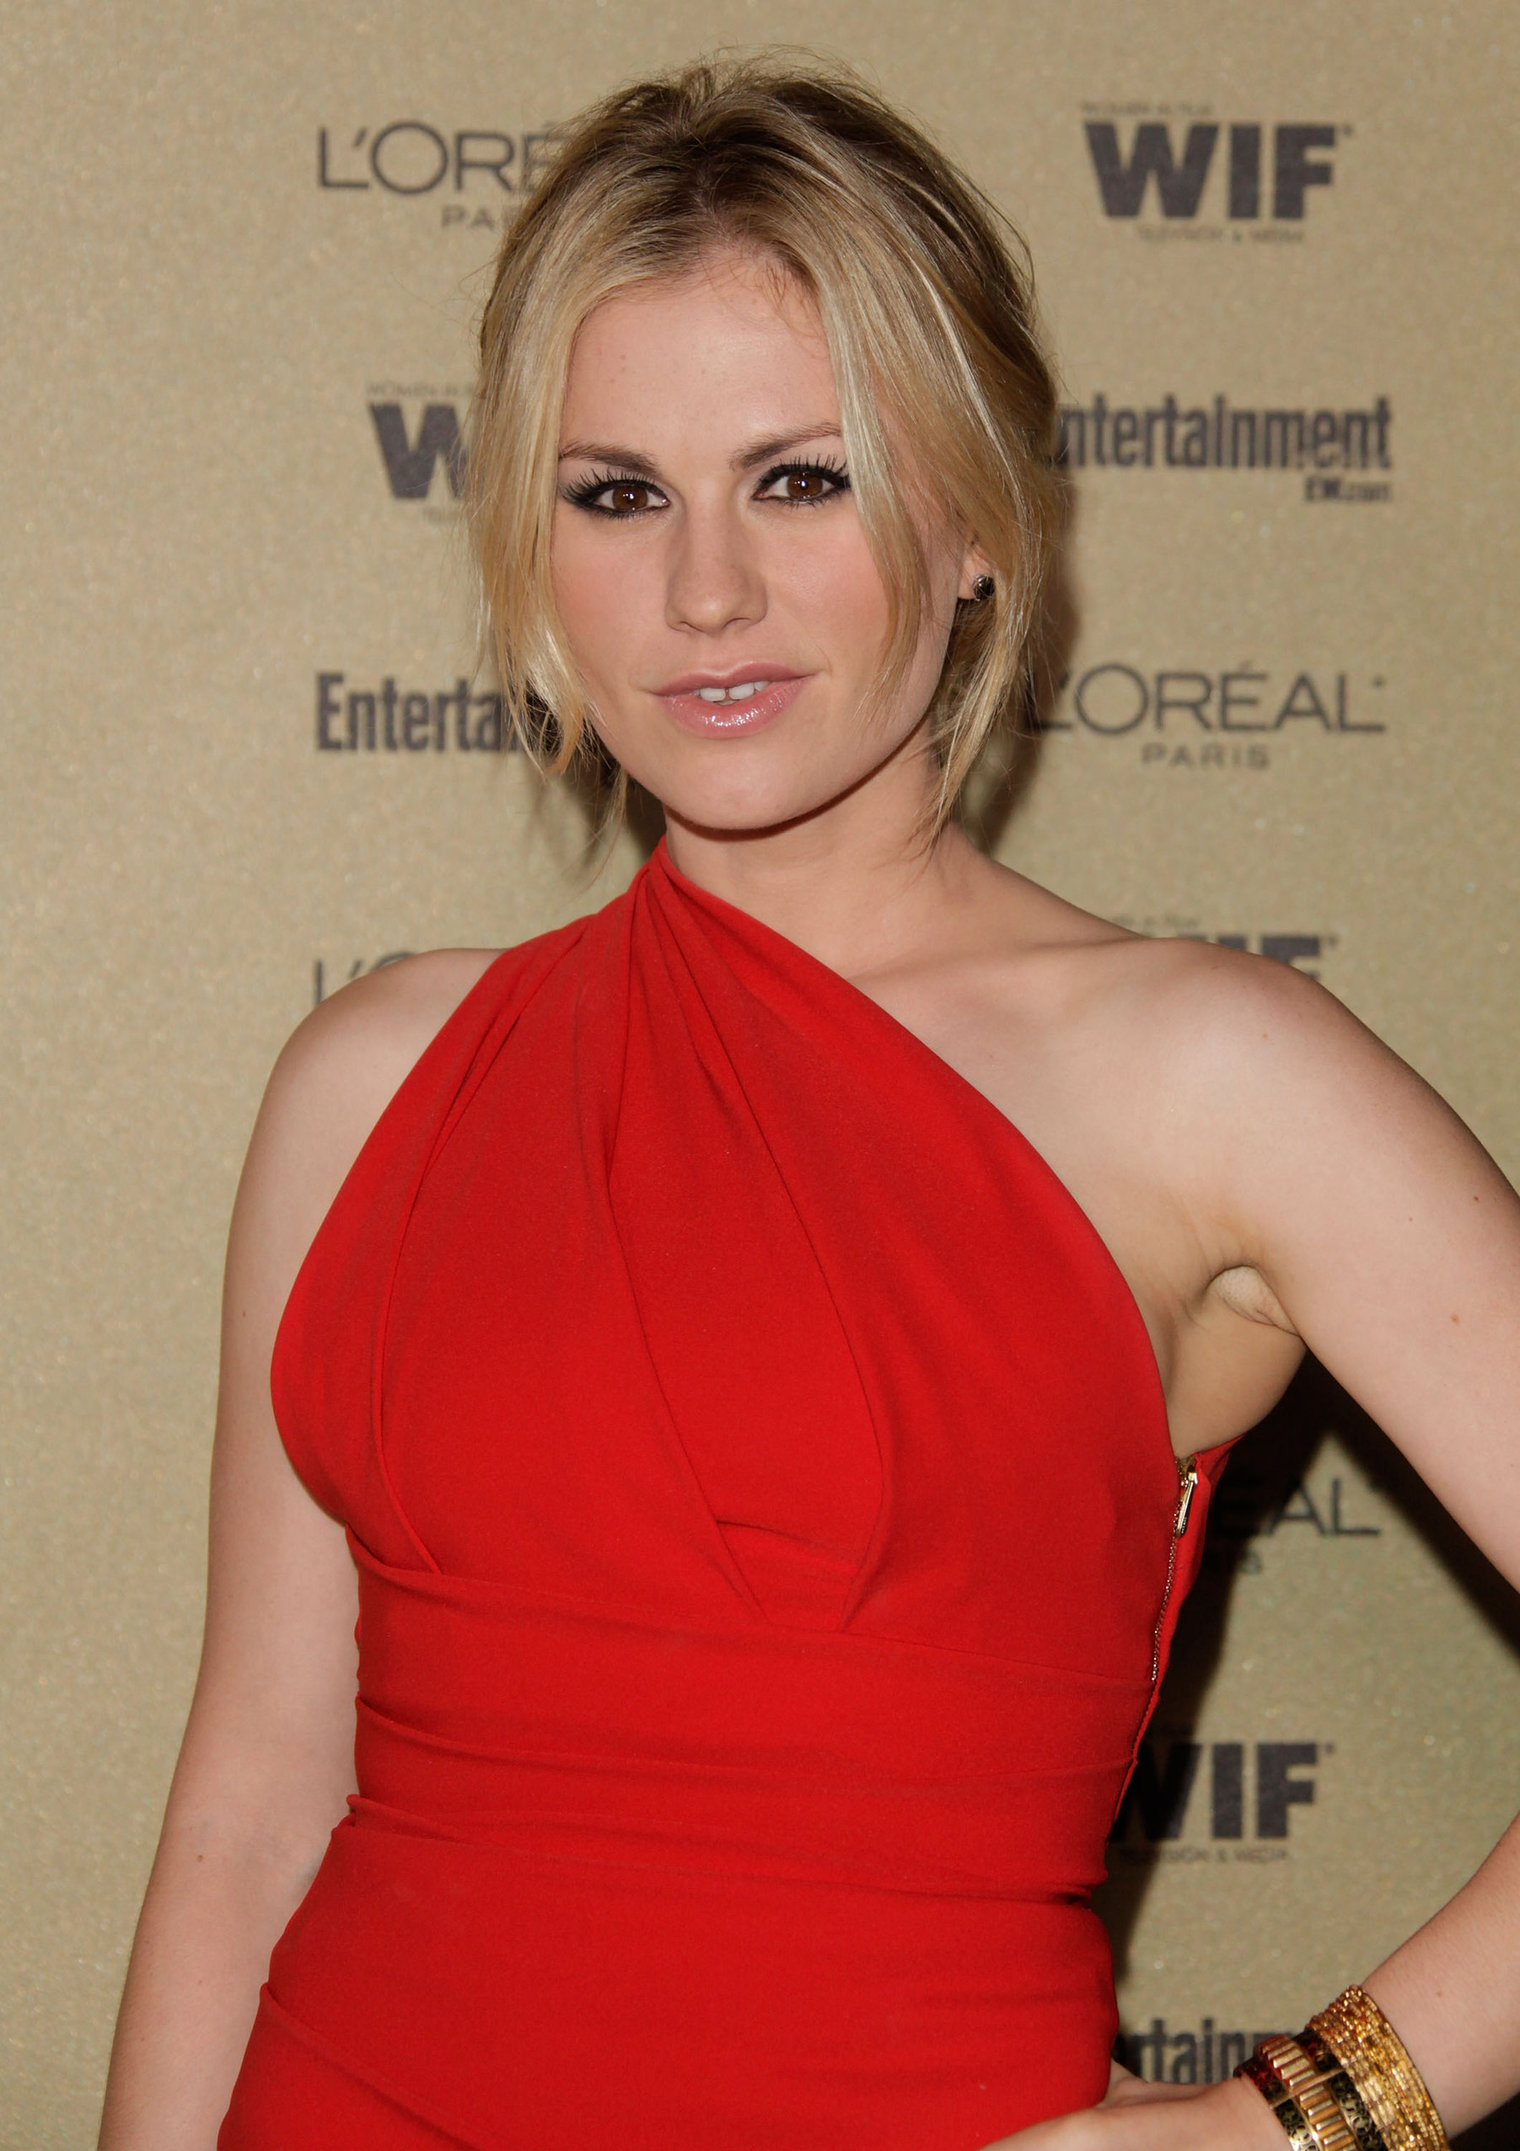 Anna Paquin Attends Entertainment Weekly And Women In Film -8616